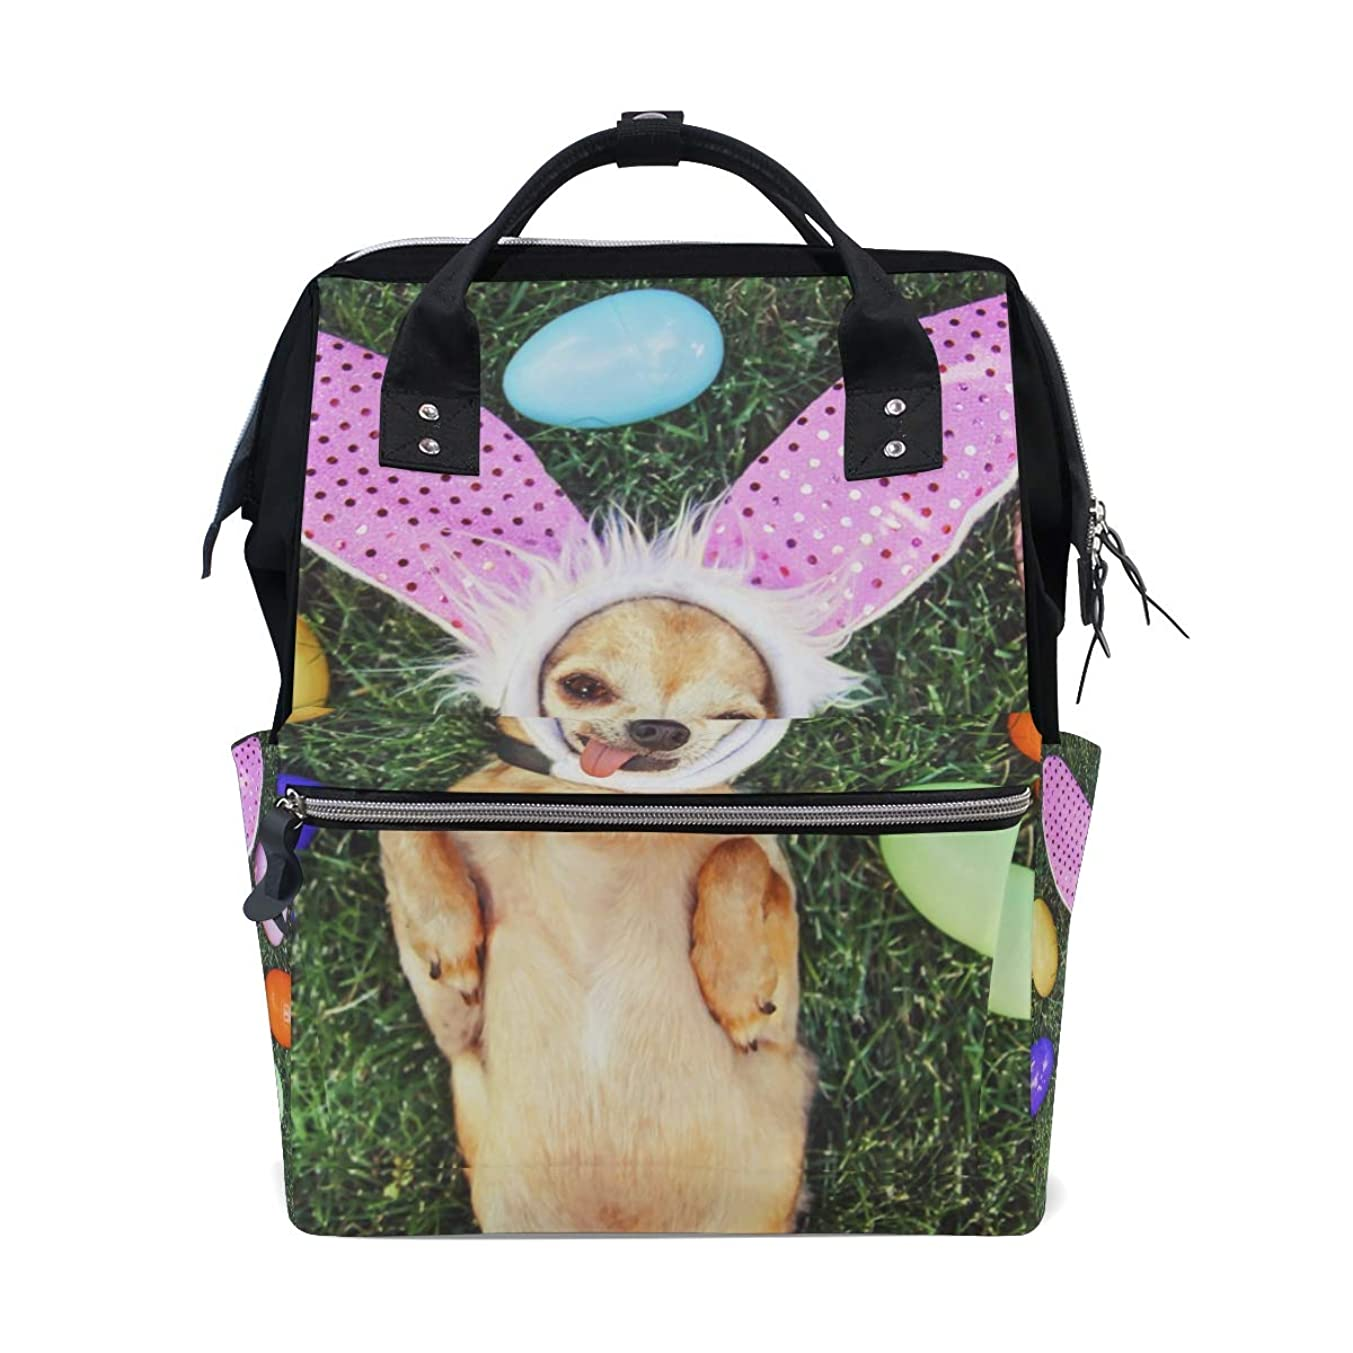 Funny Dog Easter Eggs School Backpack Large Capacity Mummy Bags Laptop Handbag Casual Travel Rucksack Satchel For Women Men Adult Teen Children